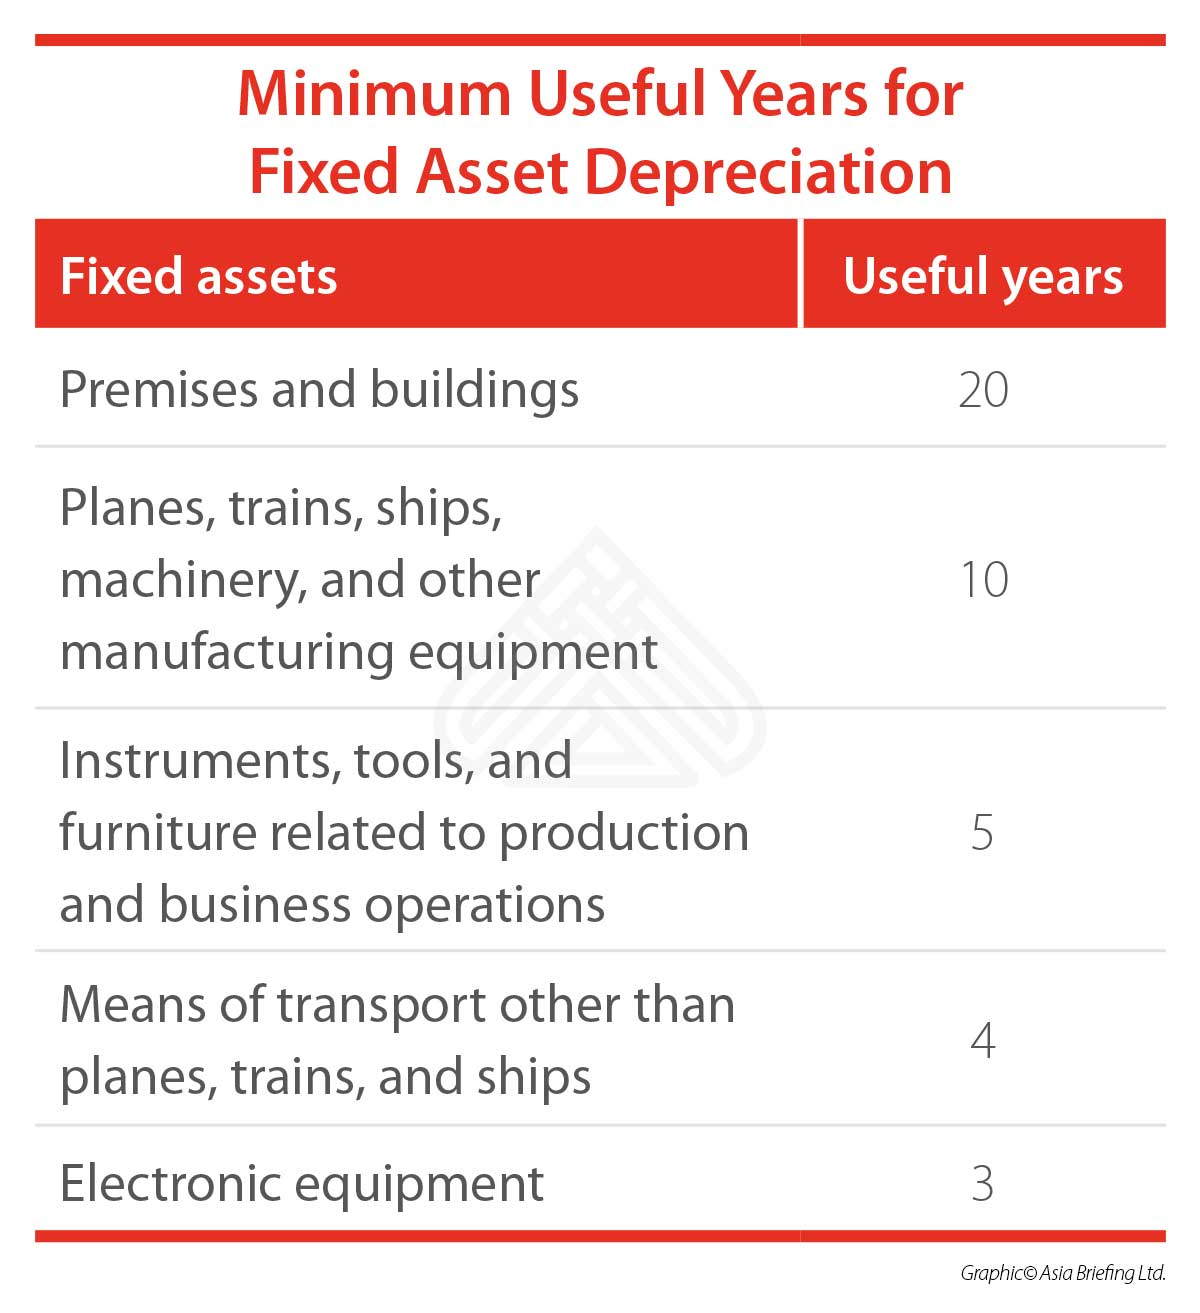 Minimum Useful Years for Fixed Asset Depreciation - China